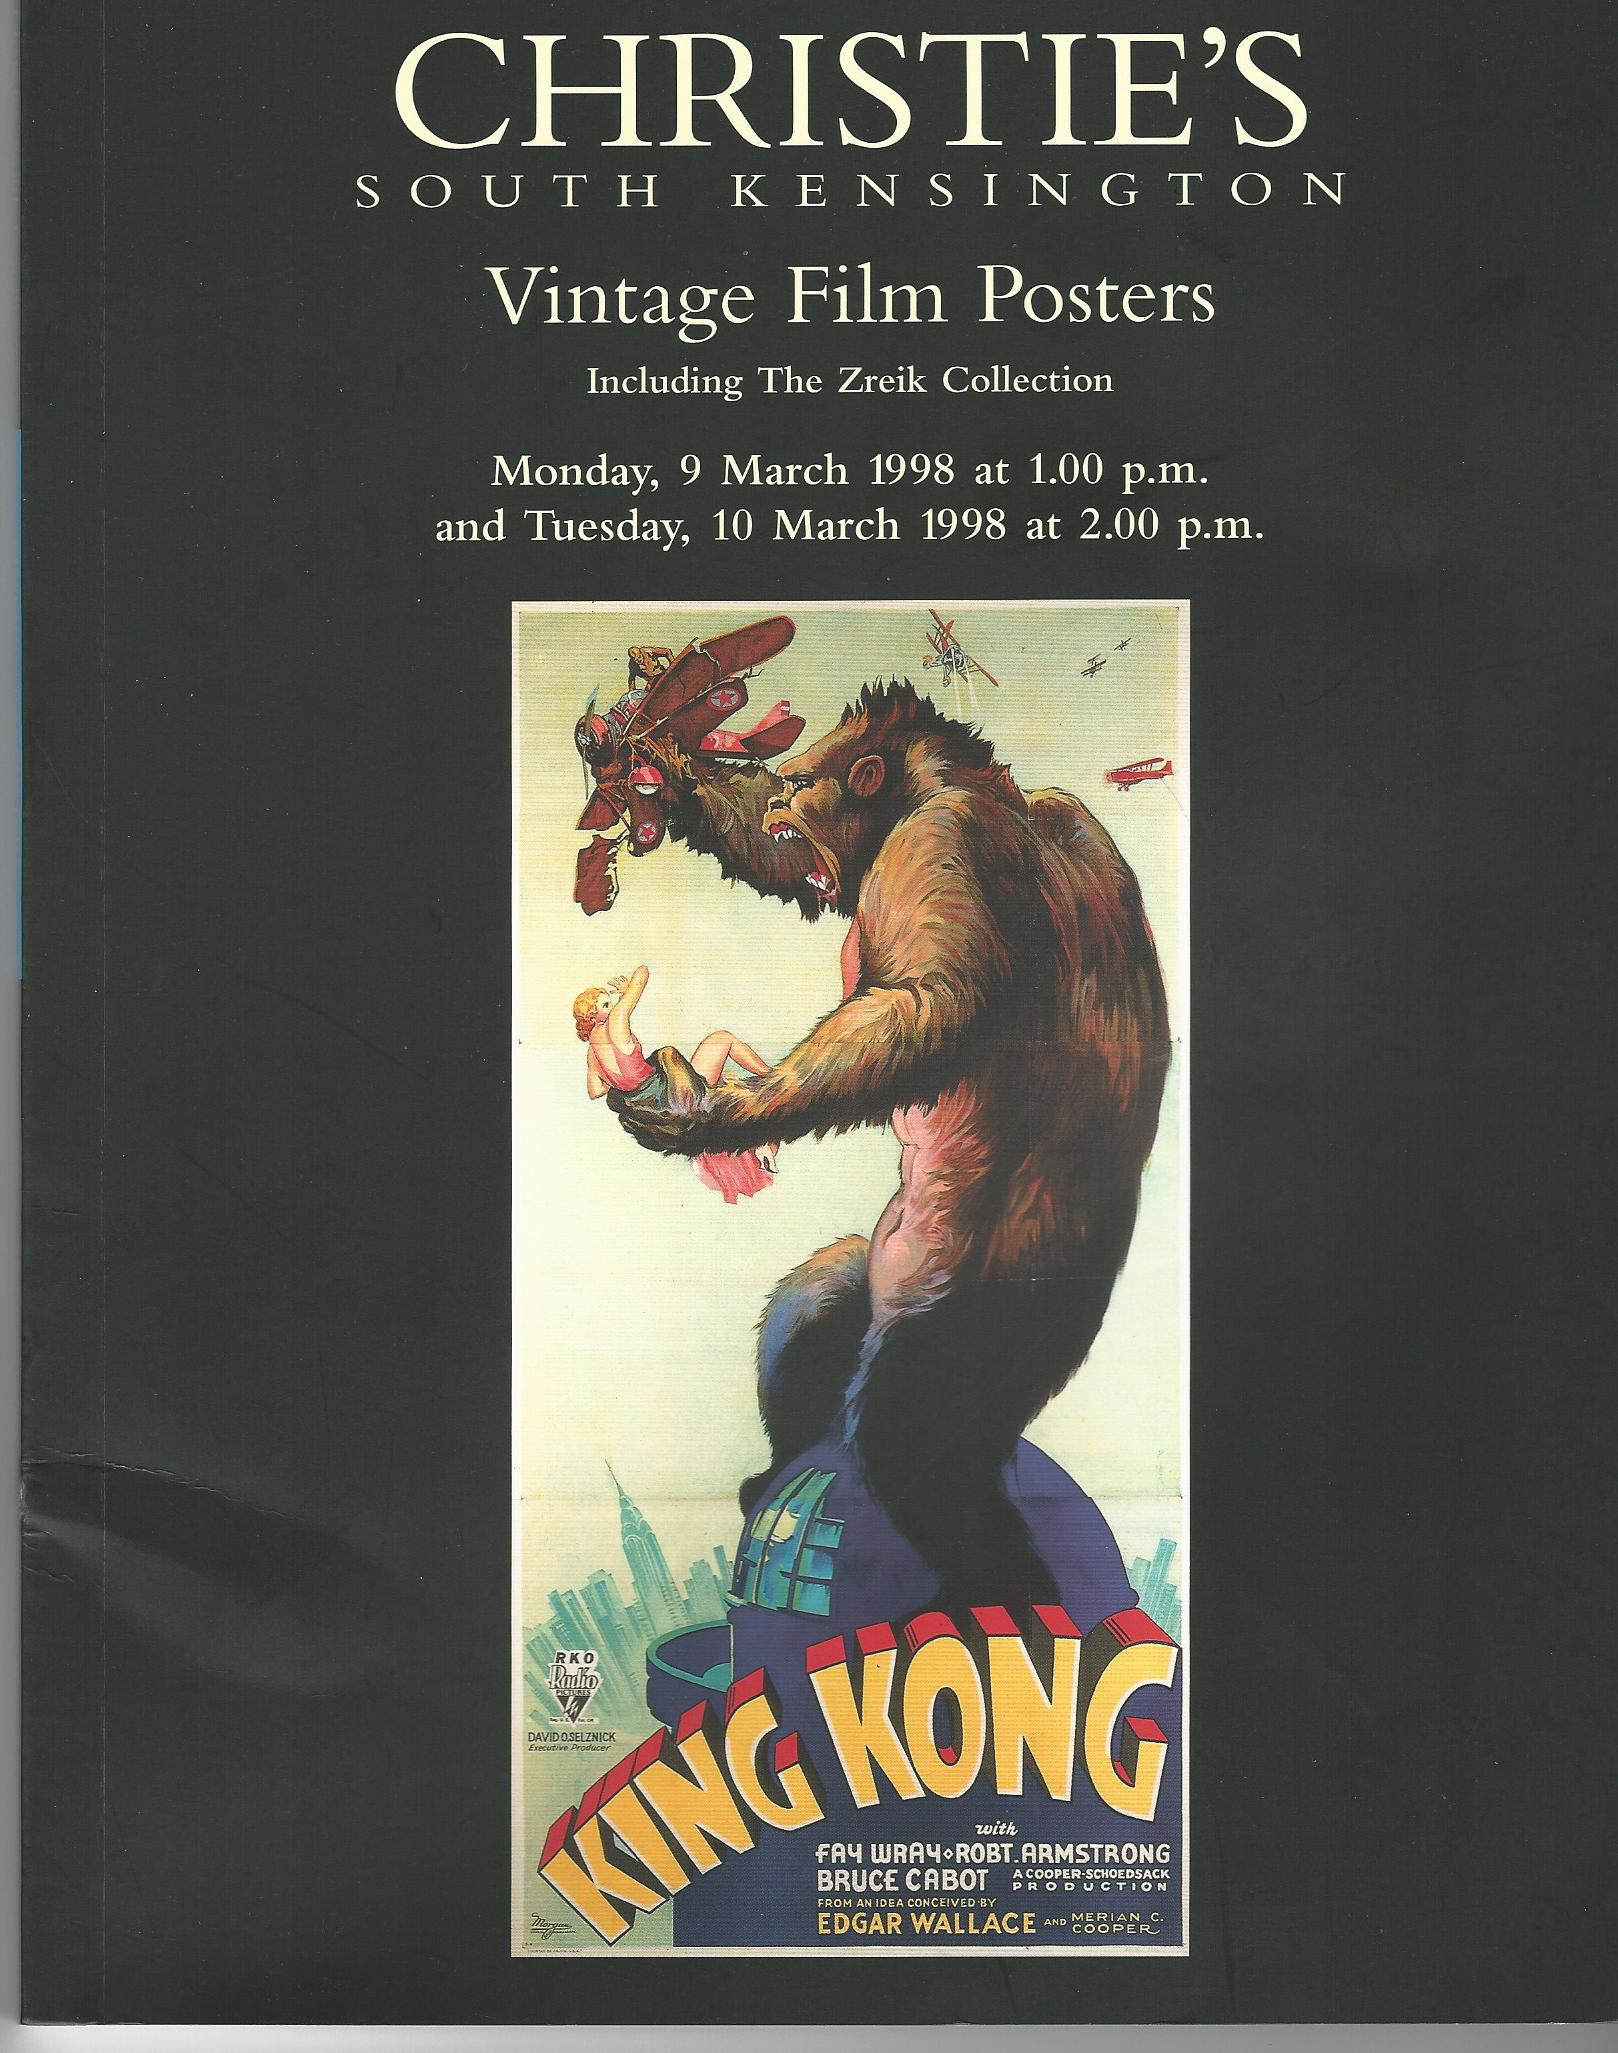 Image for Christie's South Kensington Vintage Film Posters, 9 & 10 March 1998